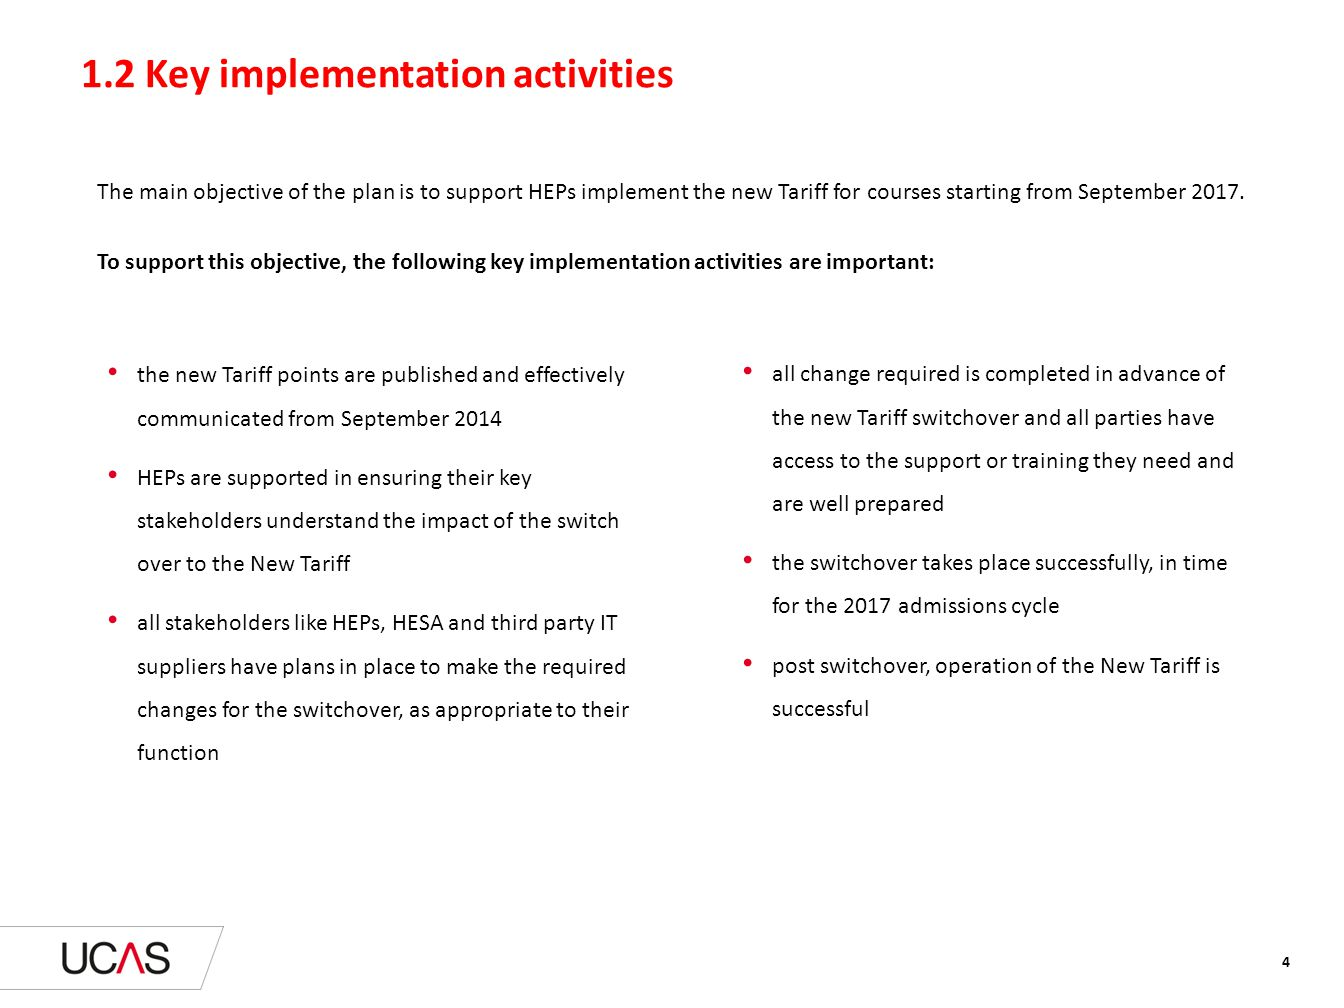 1.2 Key implementation activities The main objective of the plan is to support HEPs implement the new Tariff for courses starting from September 2017.